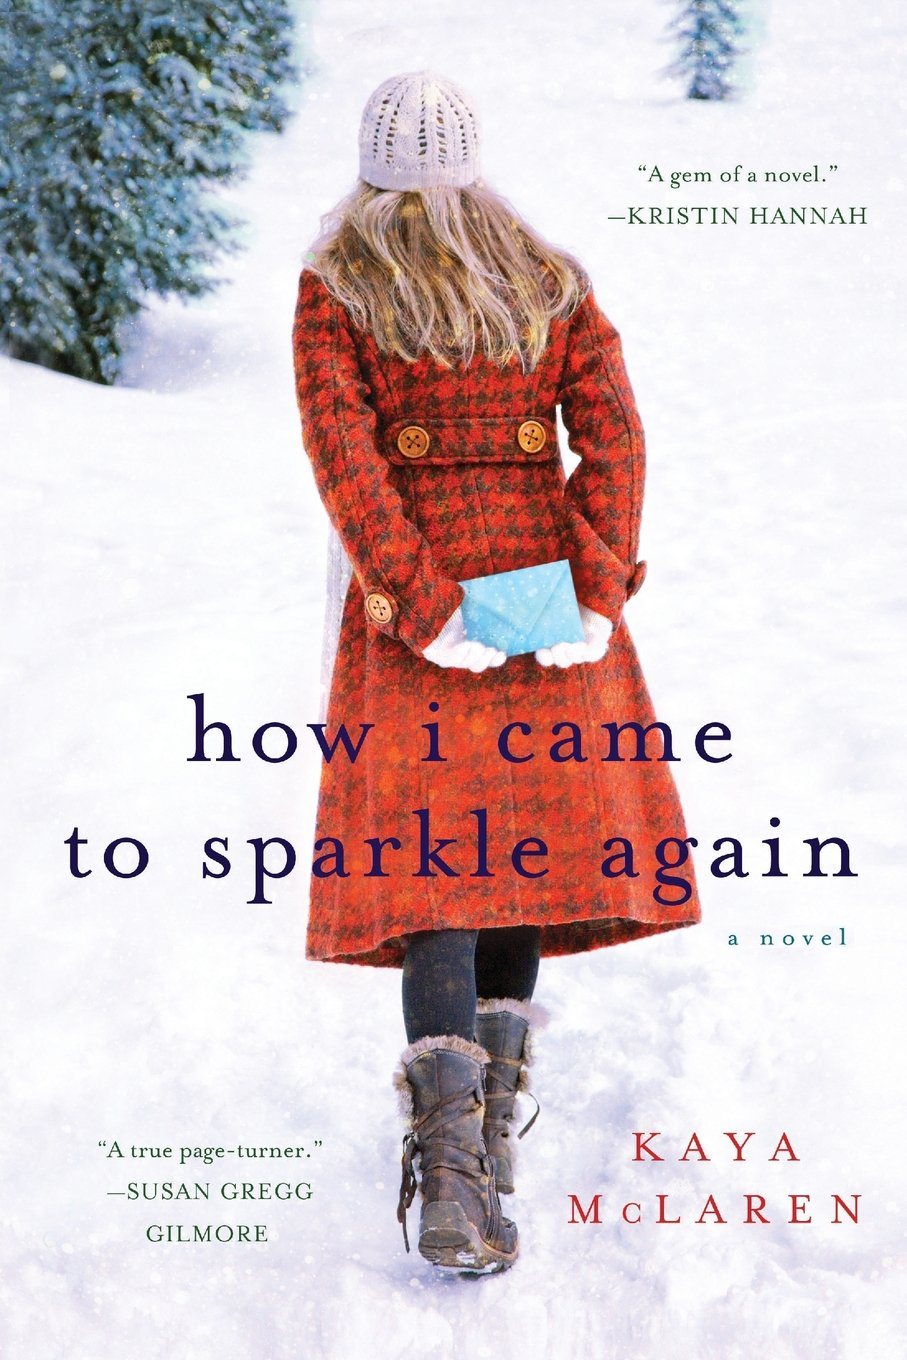 how i came to sparkle again a novel kaya mclaren 9781250000743